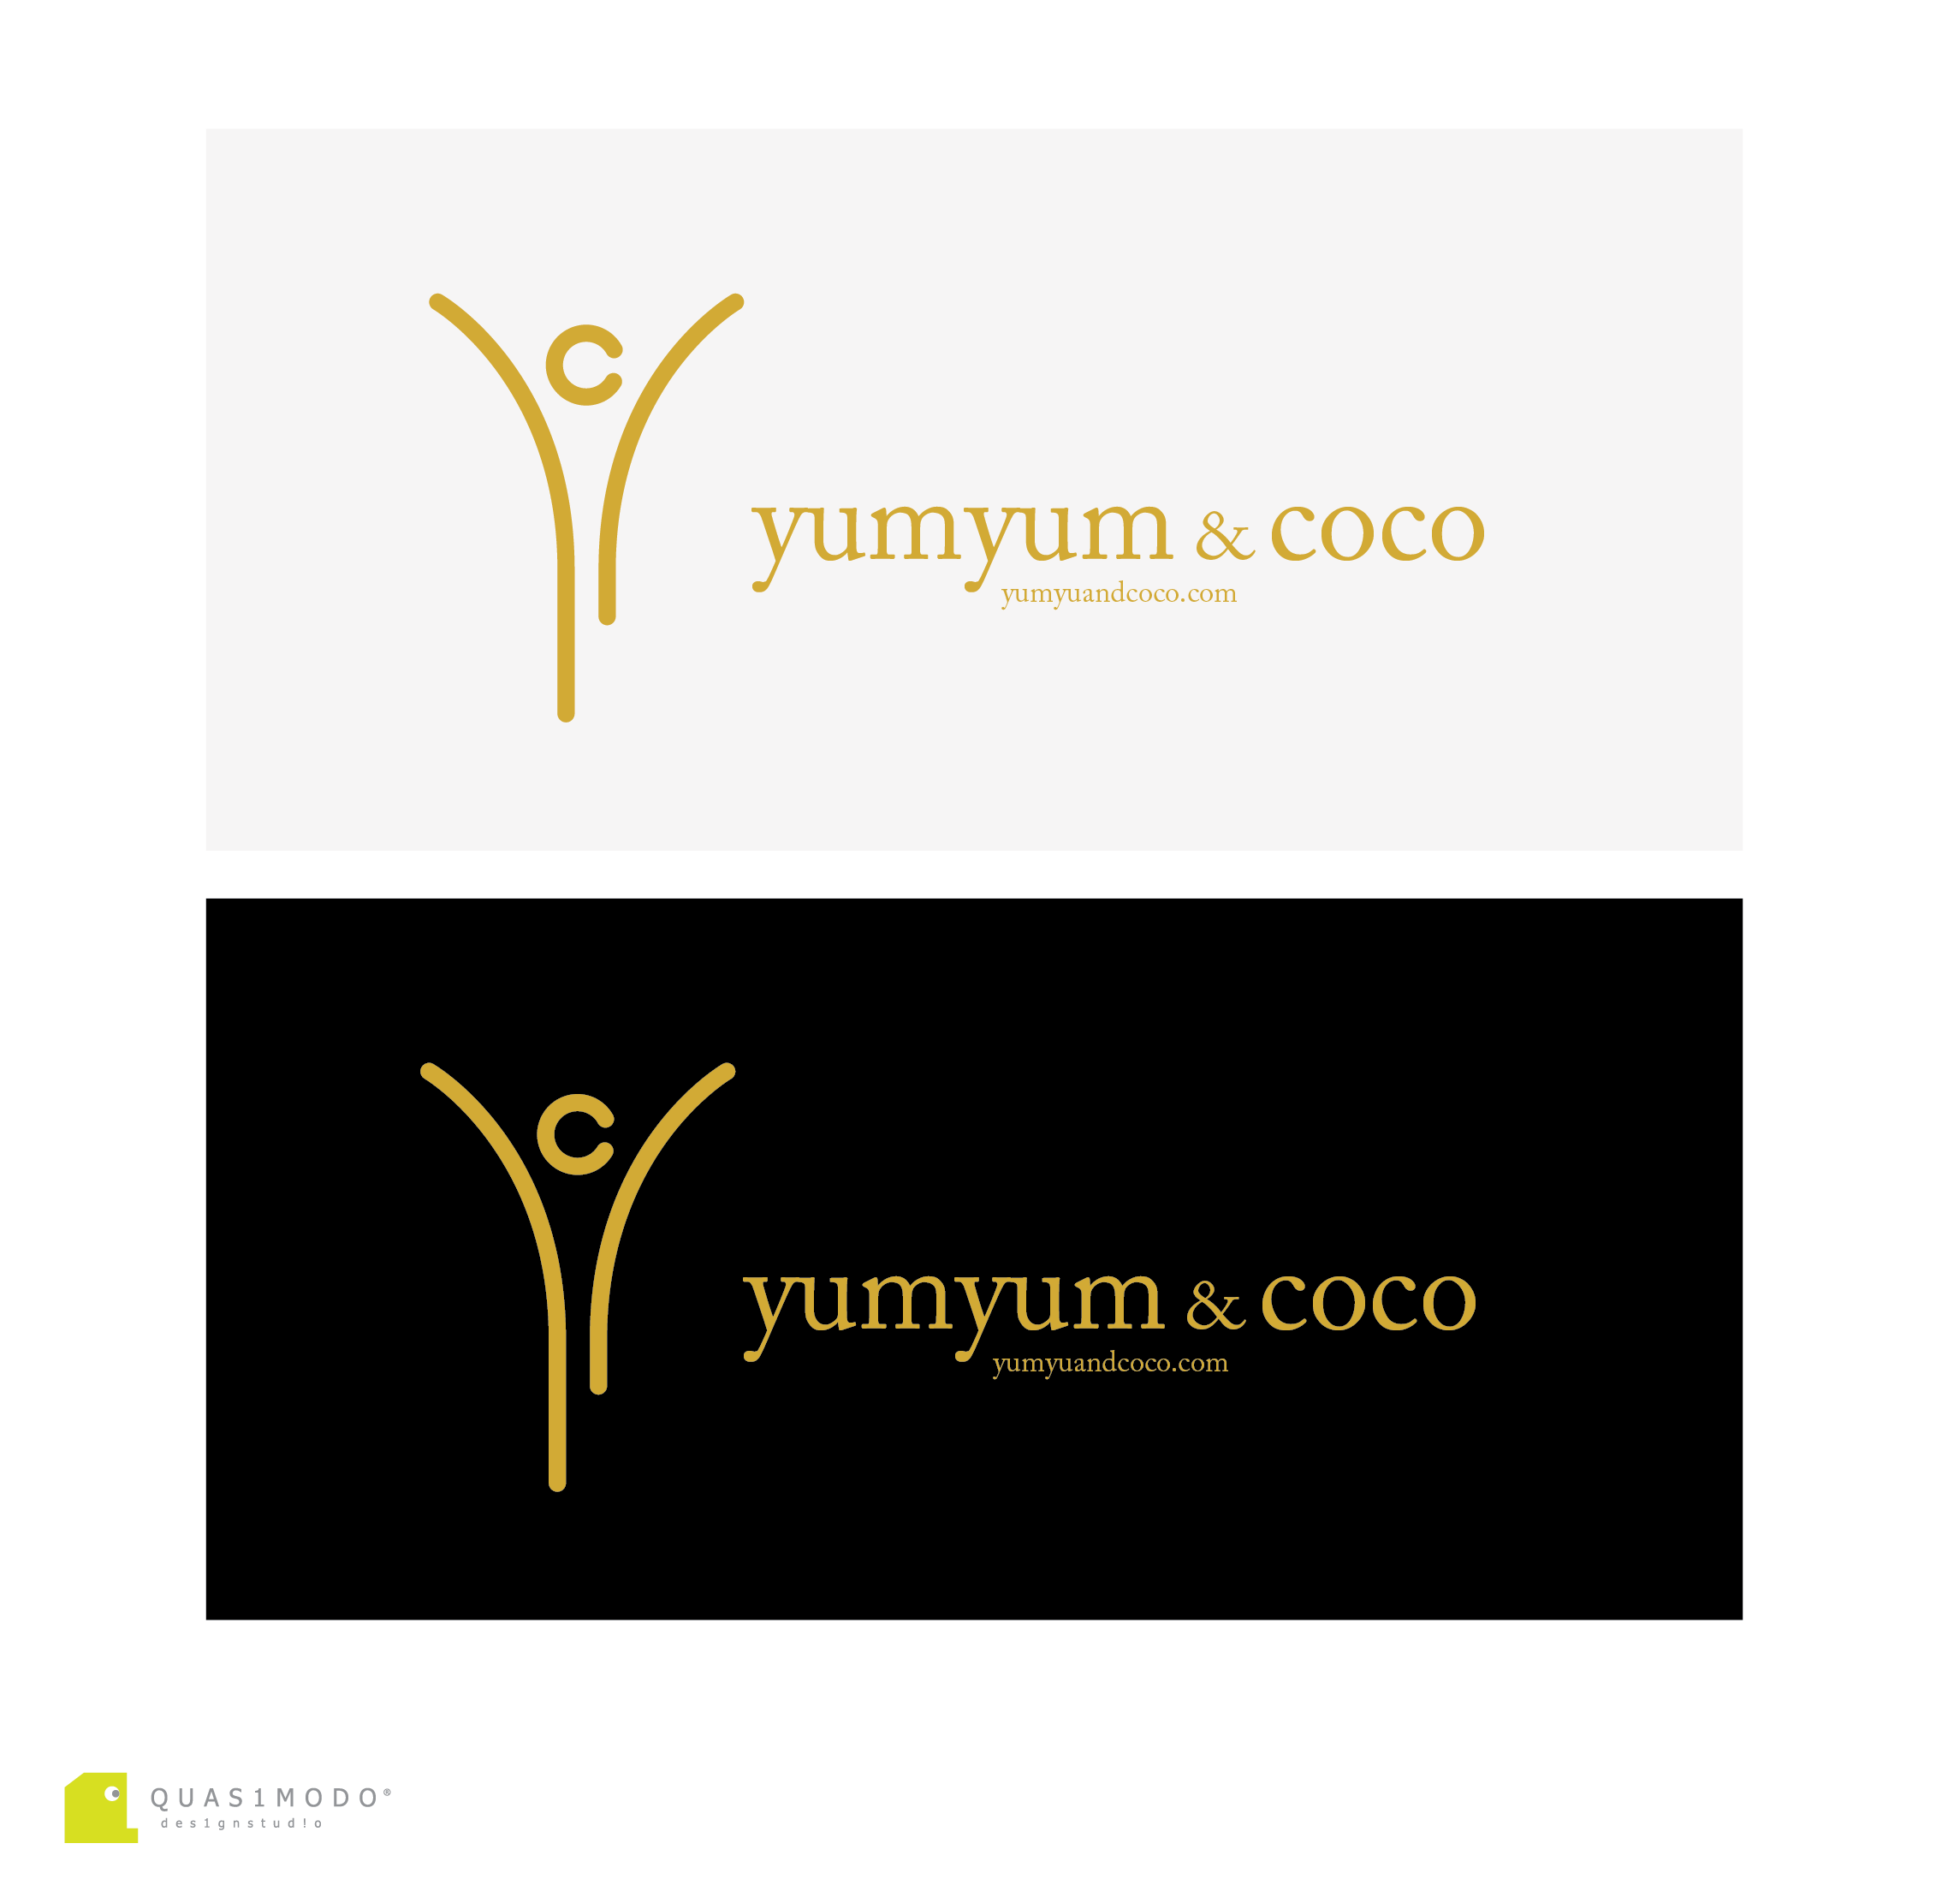 Logo Design by DIMITRIOS PAPADOPOULOS - Entry No. 165 in the Logo Design Contest Logo Design for YumYum & CoCo.